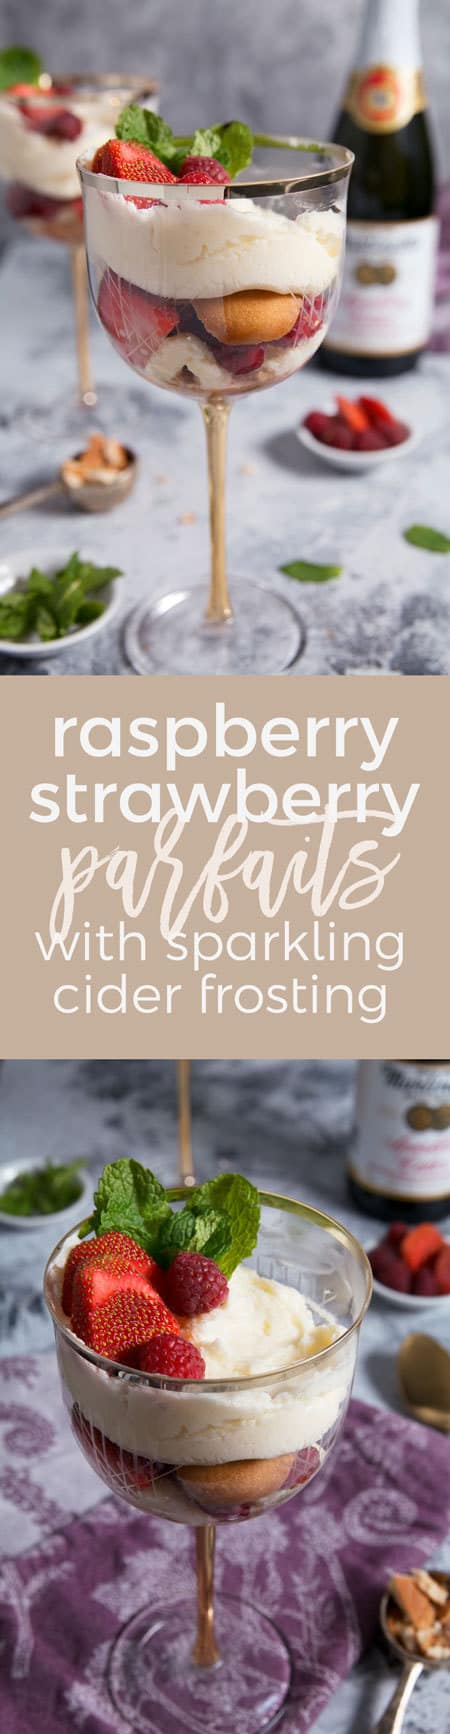 Raspberry Strawberry Parfaits with Sparkling Cider Frosting pin